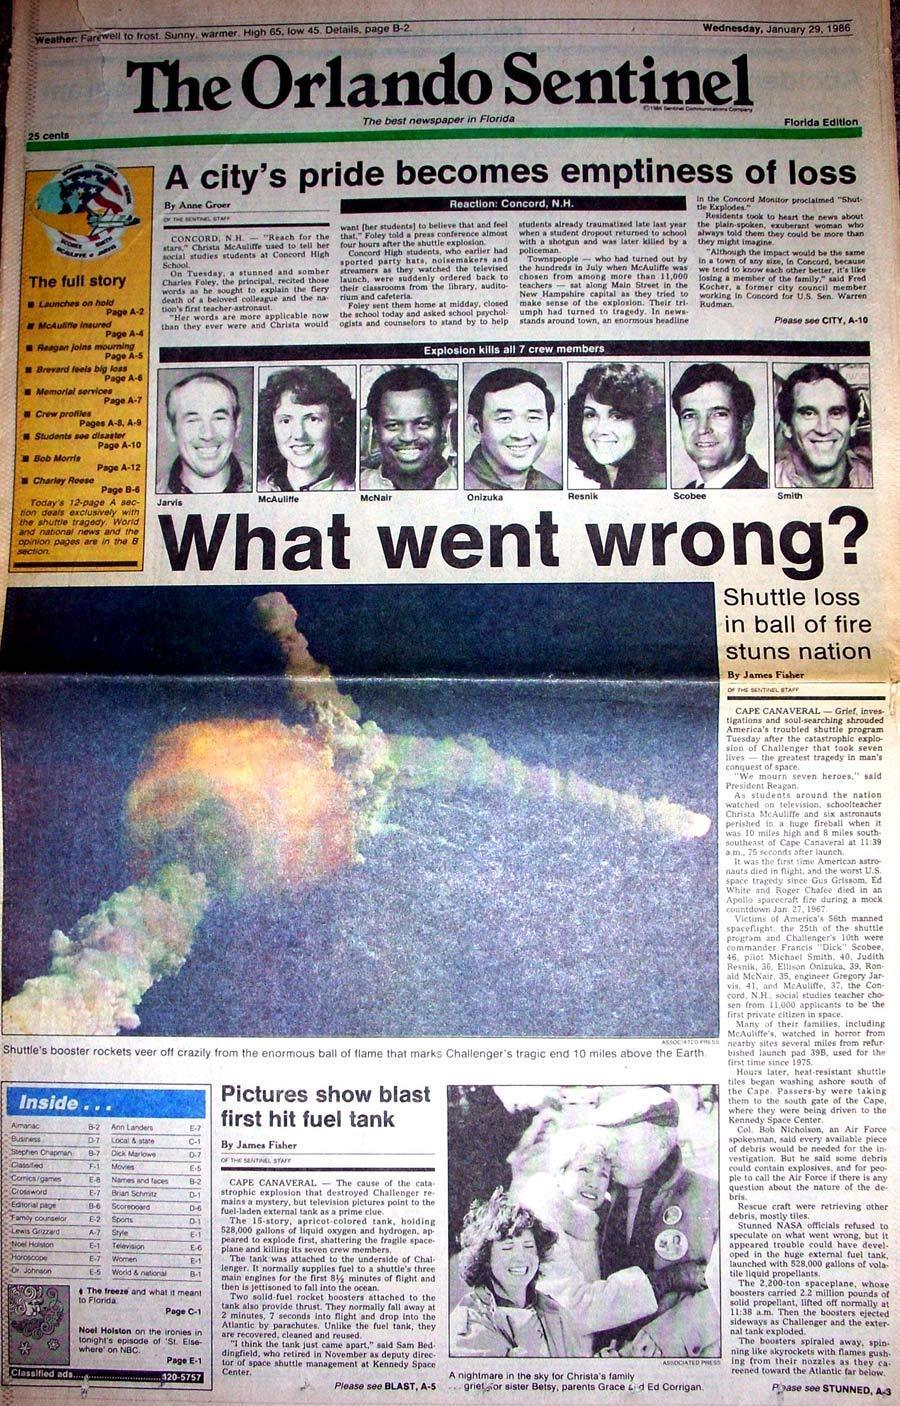 Orlando Sentinel Front Page About The Space Shuttle